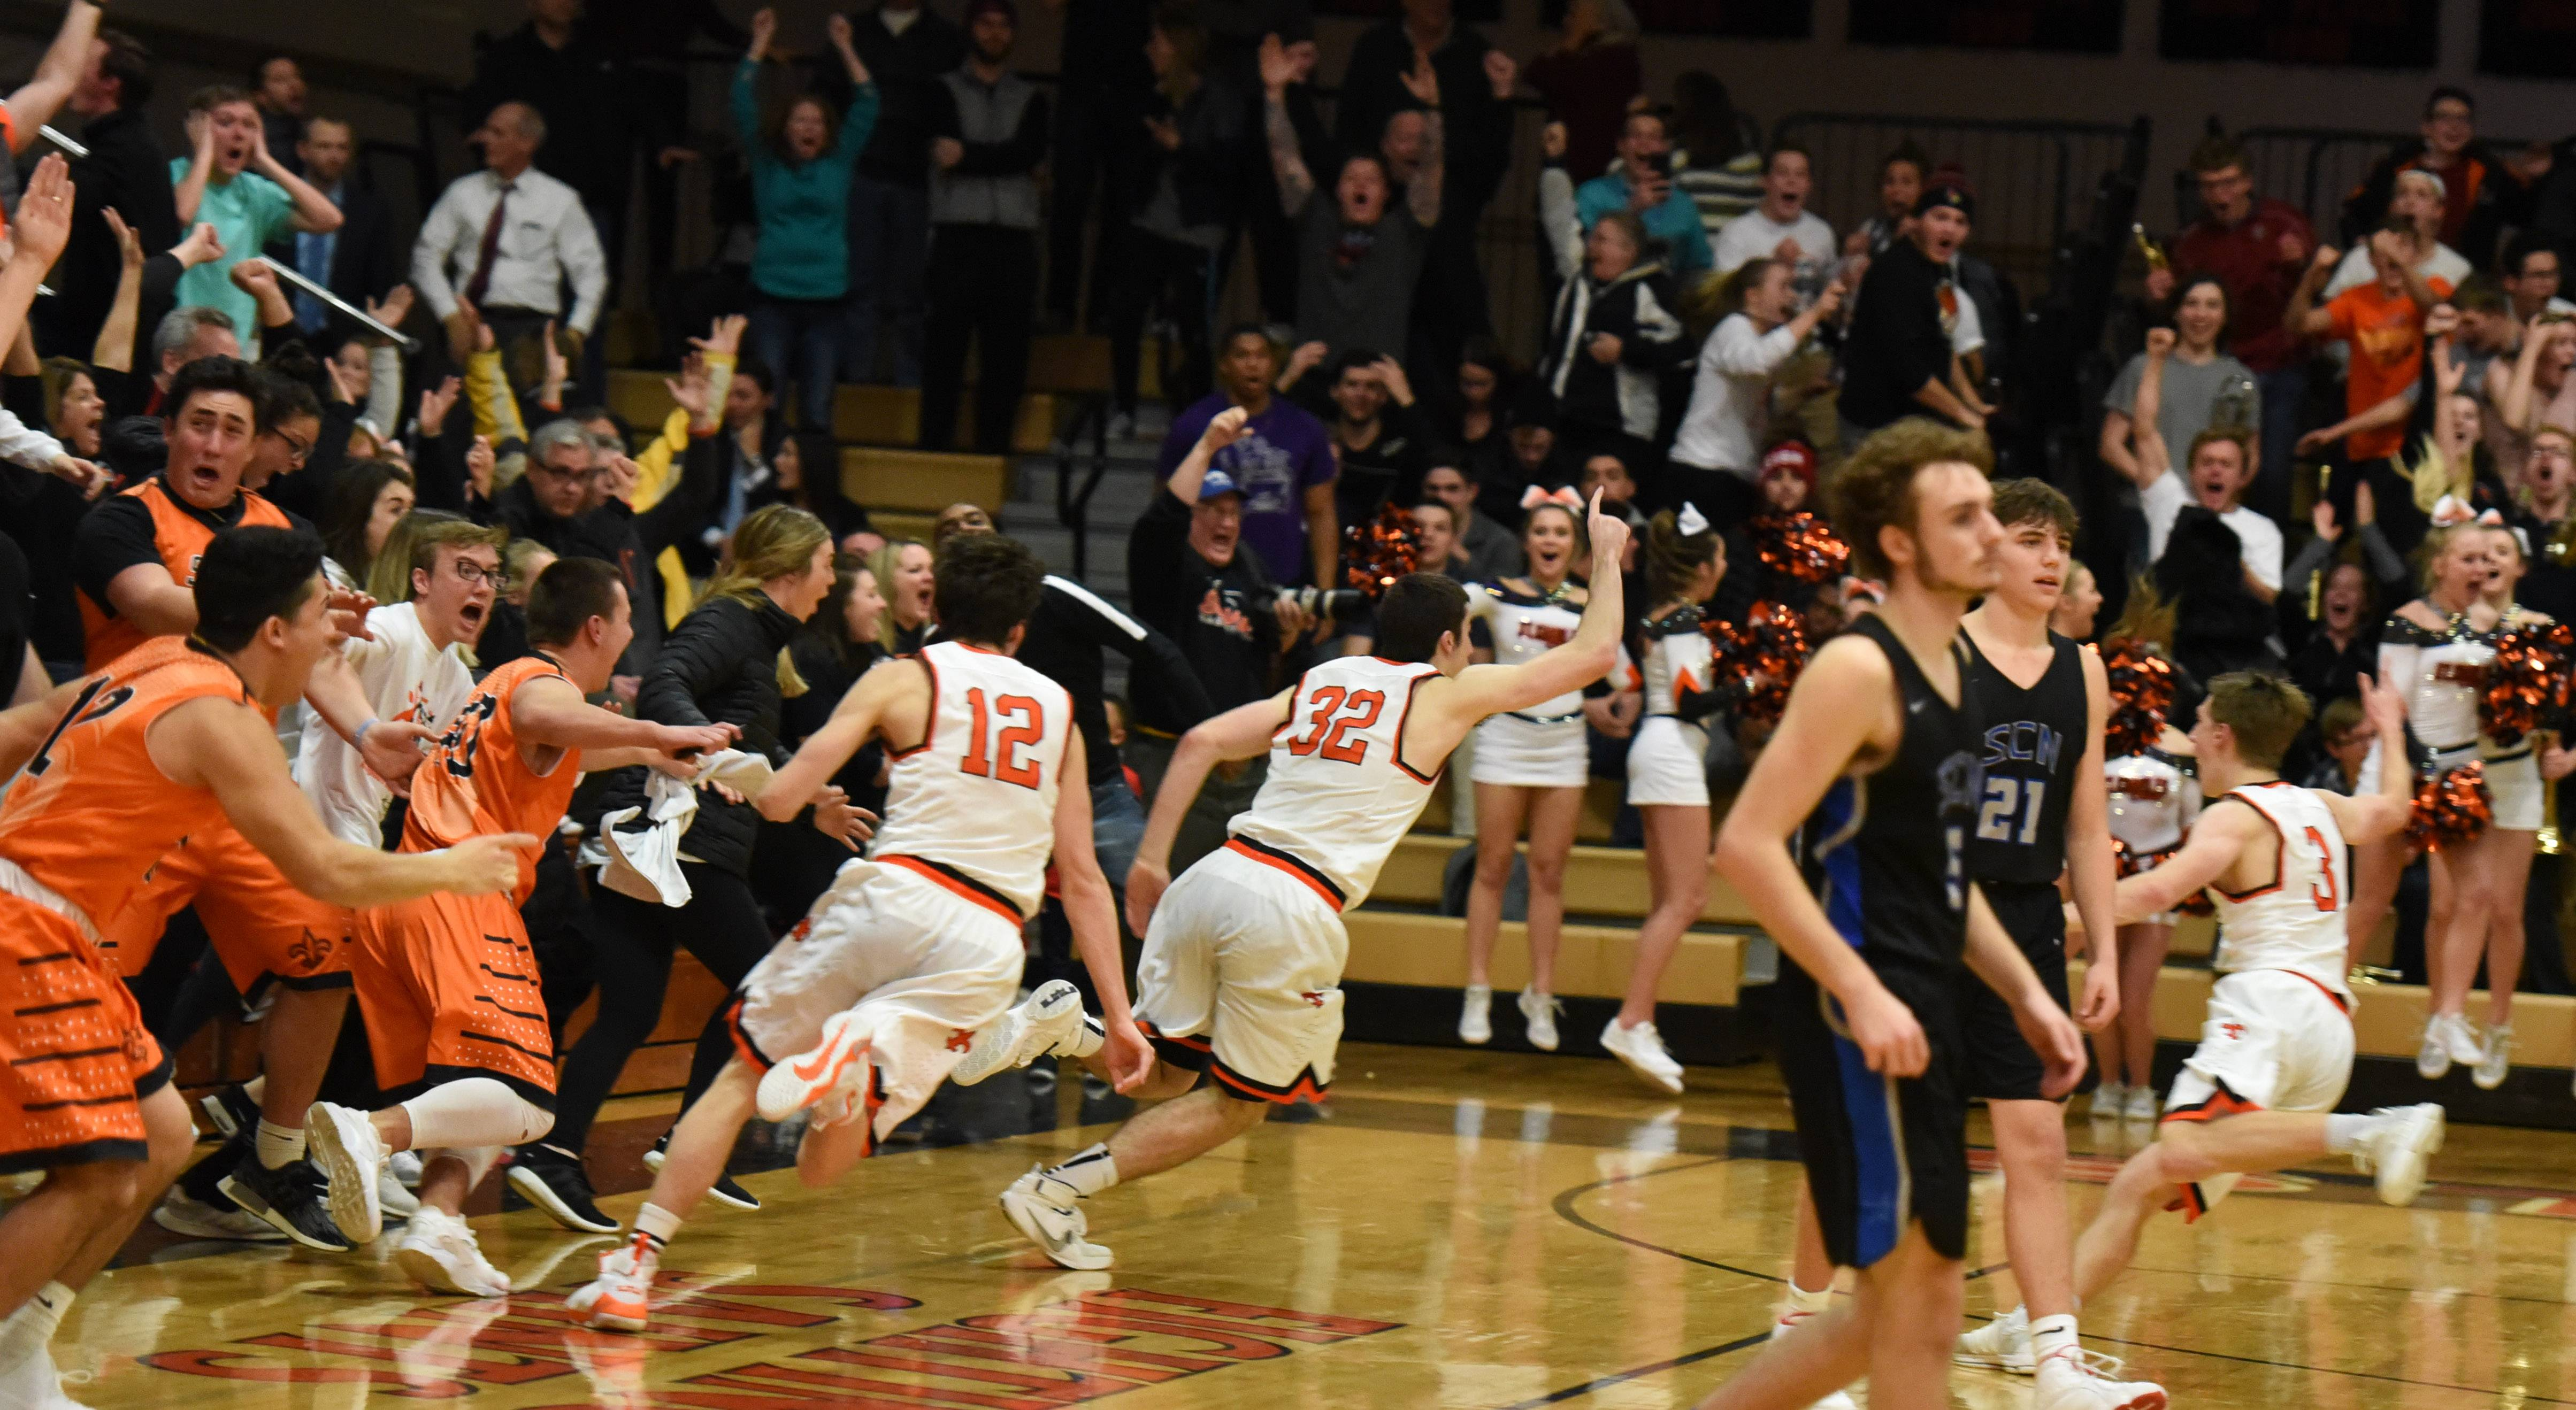 Above: St. Charles East's Justin Hardy (32) races off the court as the fans storm out of the stands following his last-second shot to beat St. Charles North during Friday's game at East. Below: Hardy celebrates with his teammates and Saints fans.